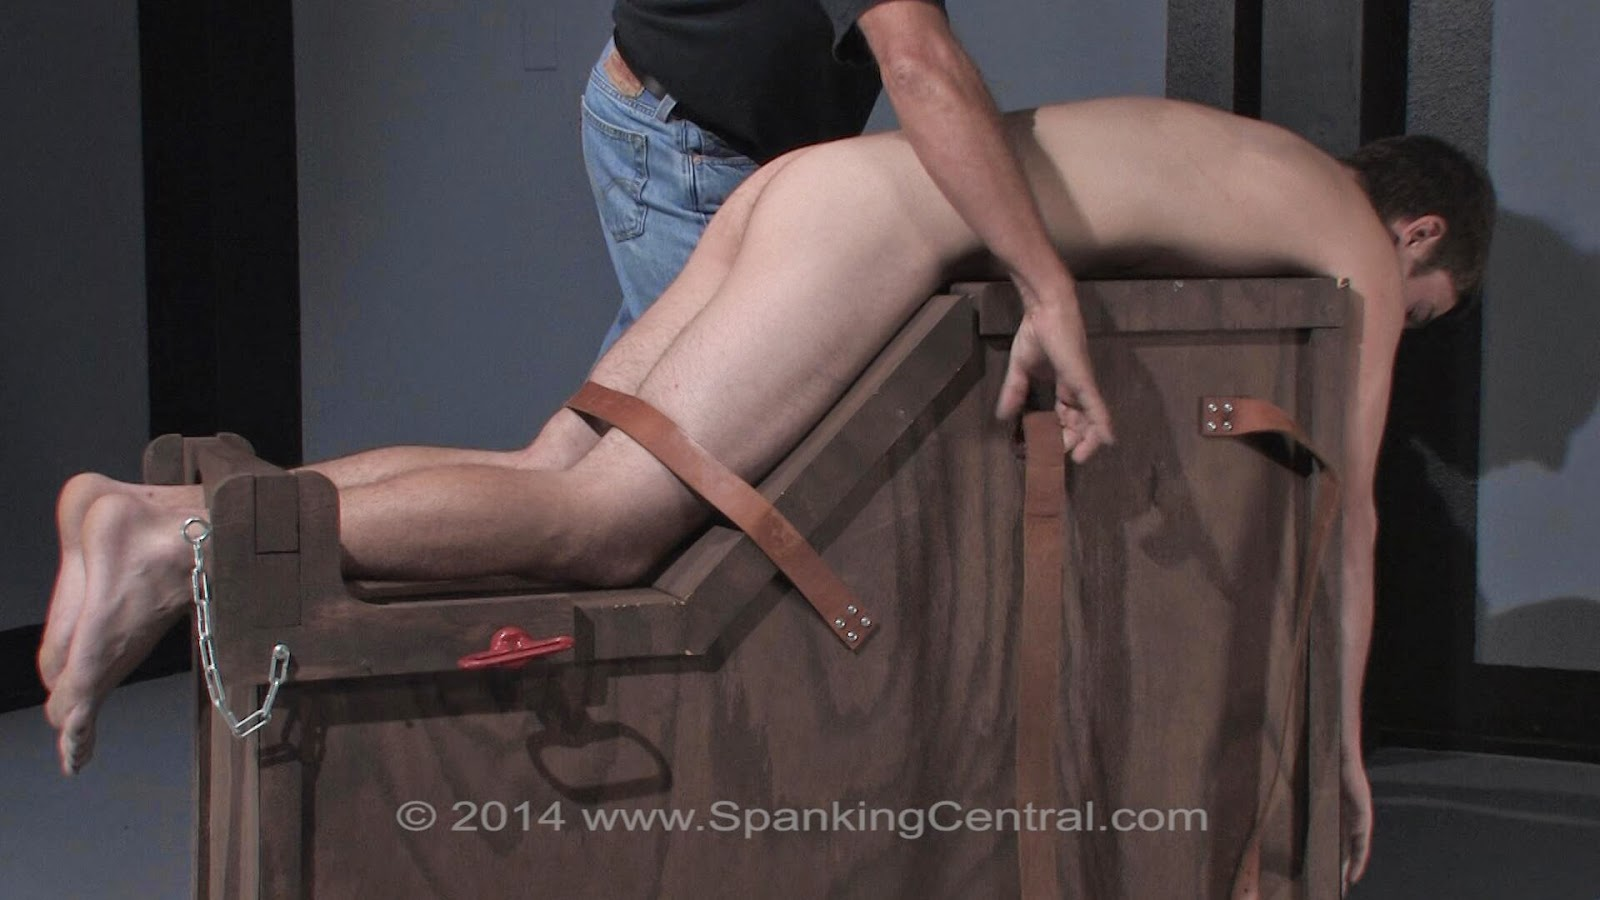 Male spank central remarkable